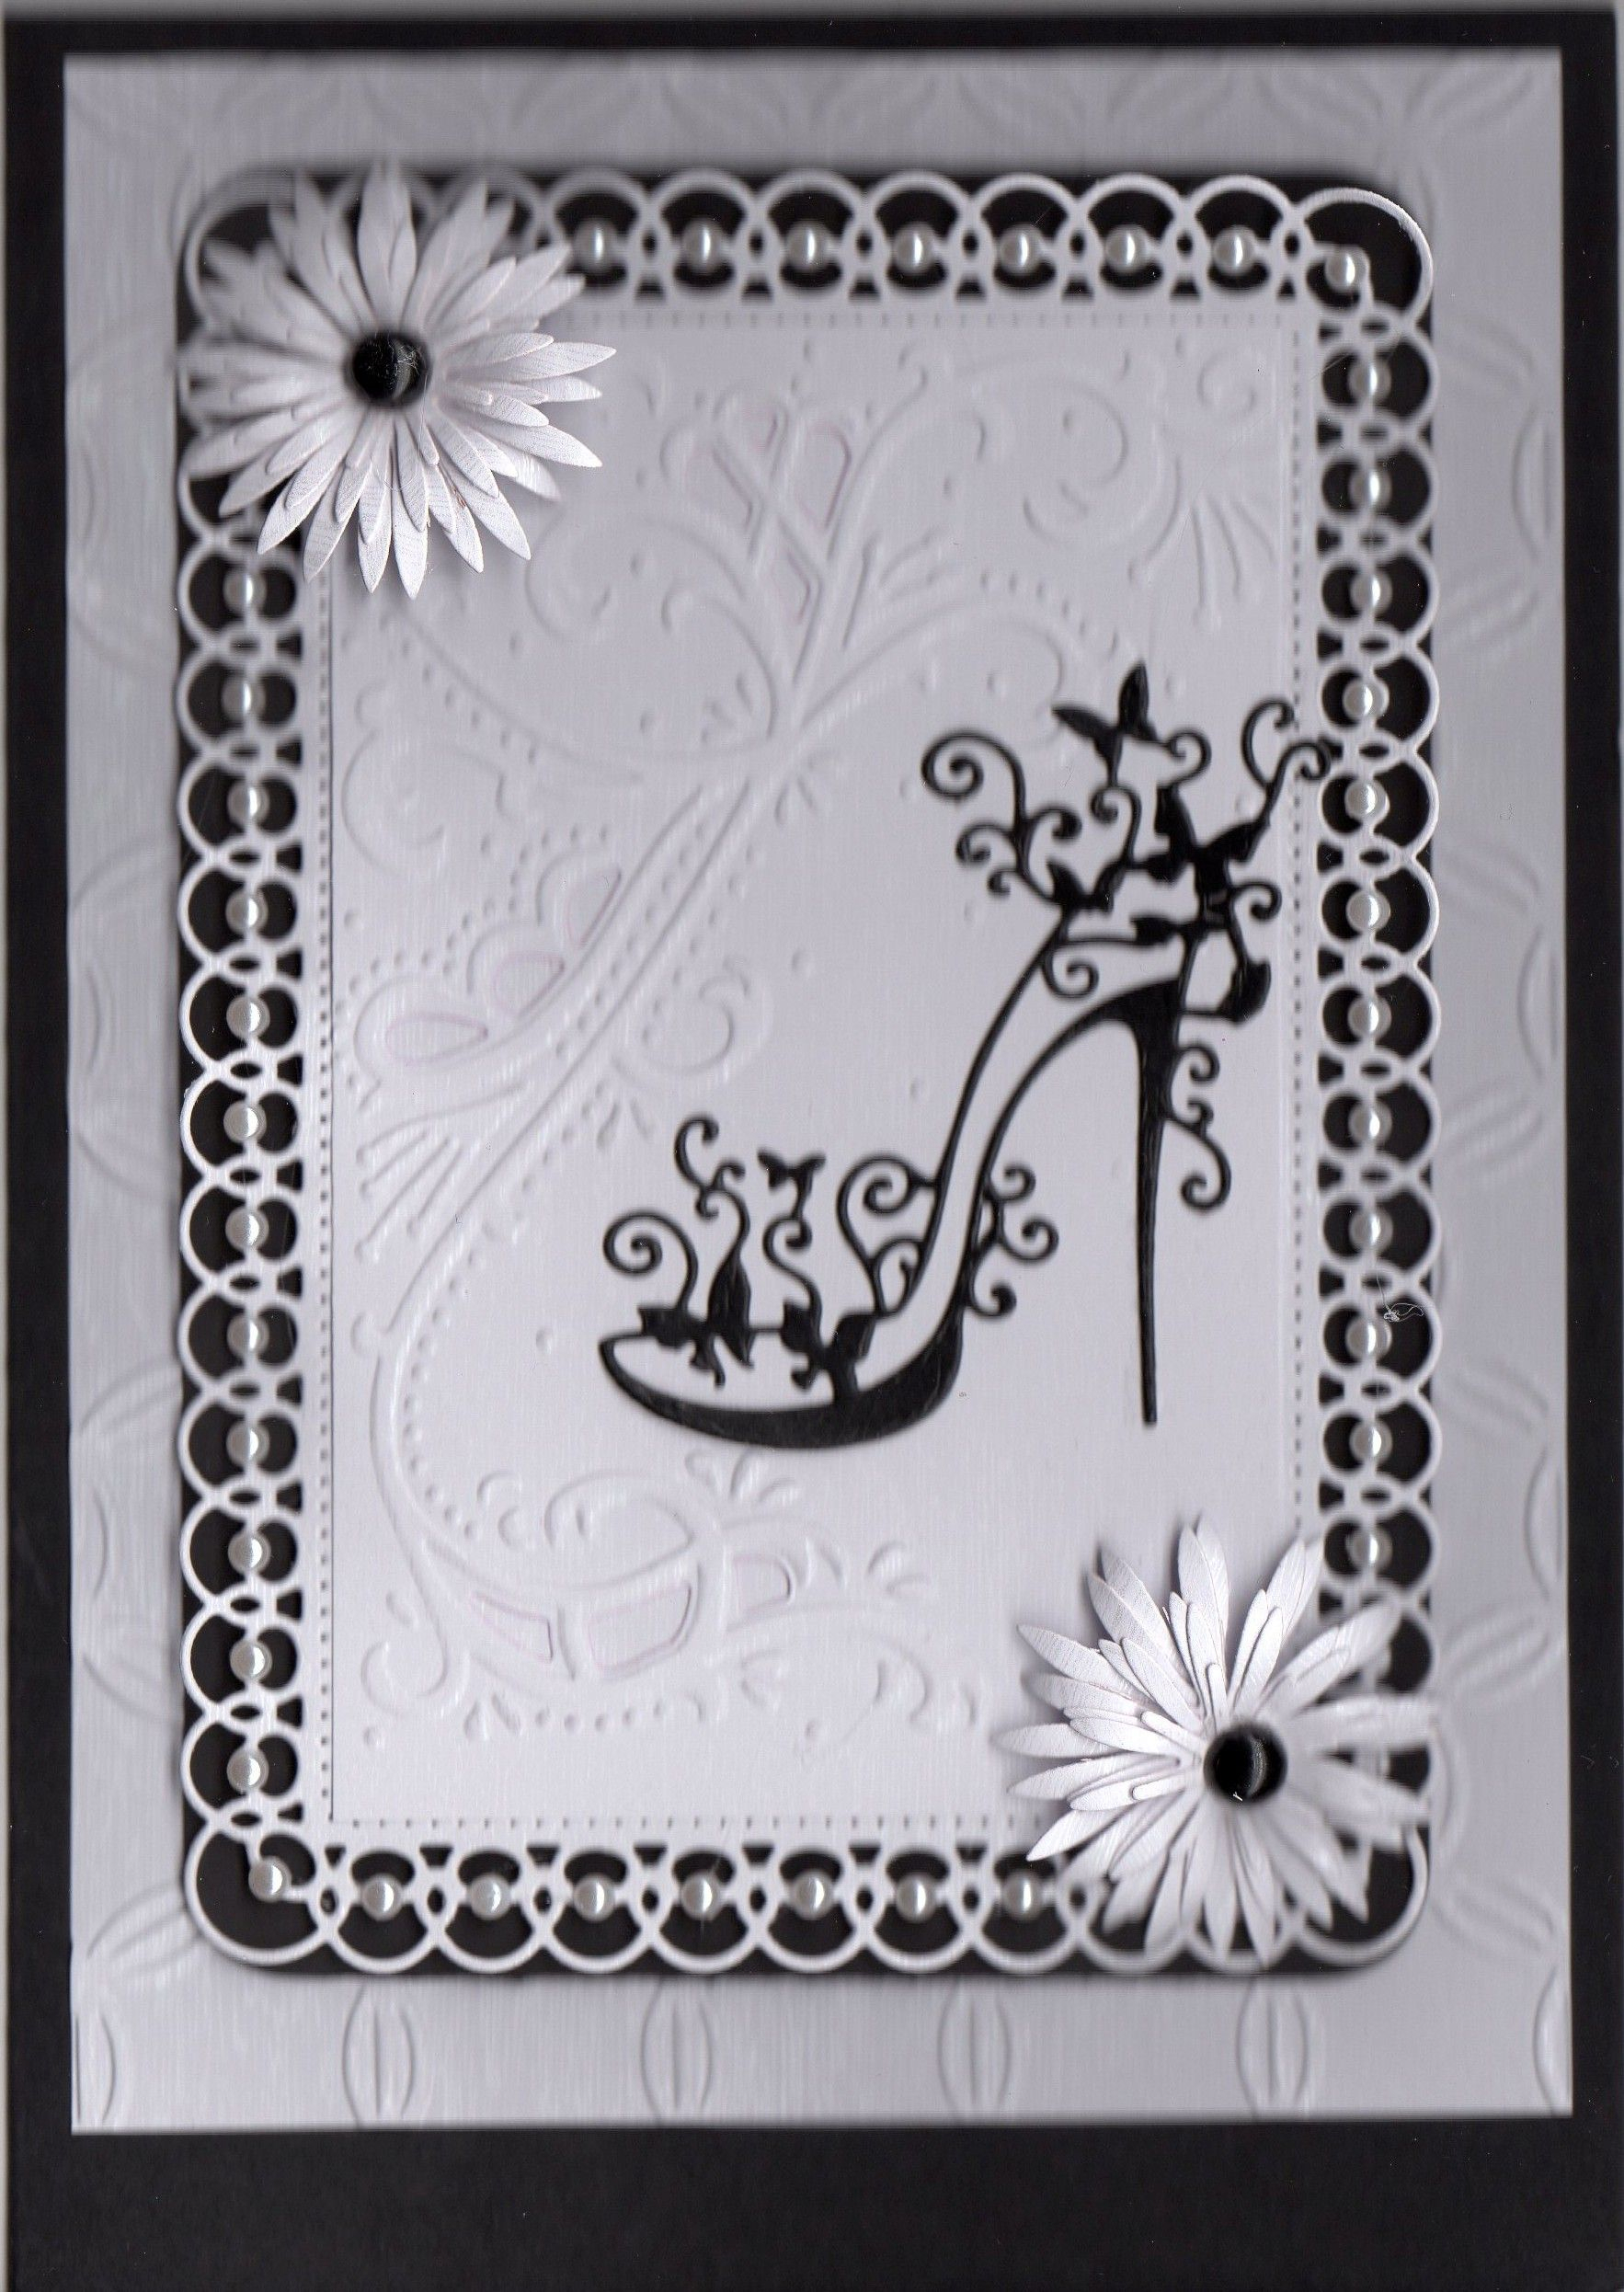 tattered lace shoe die | Cards - 25 | Cards, Tattered lace ...